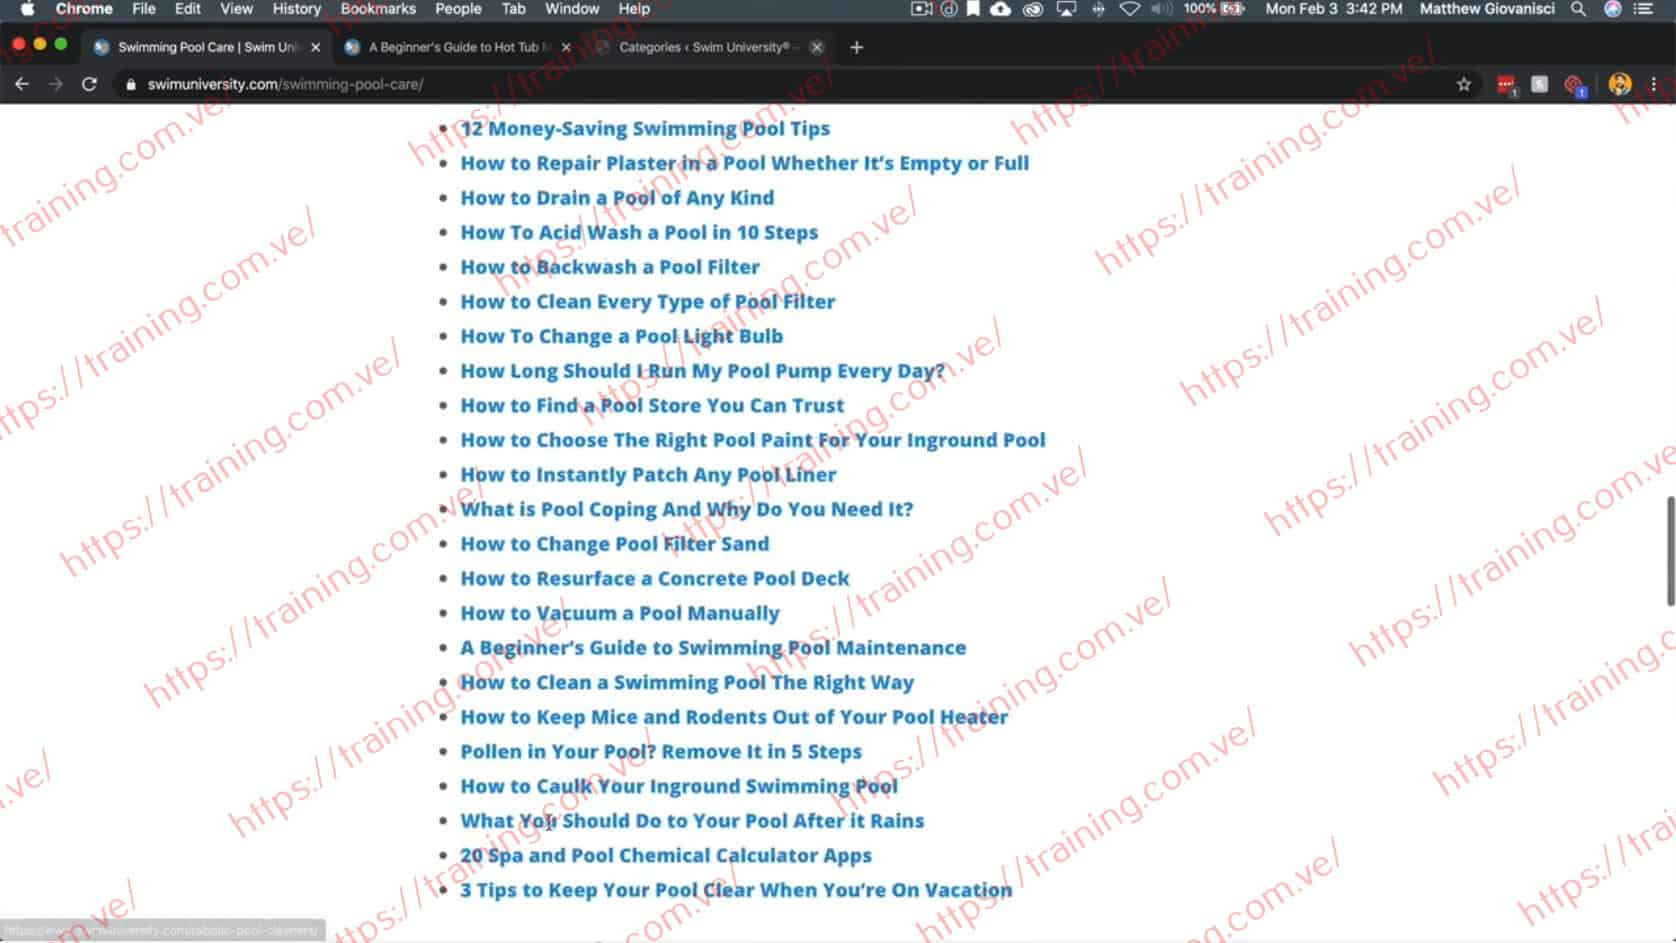 PageSpeed for Bloggers by Matt Giovanisci Coupon